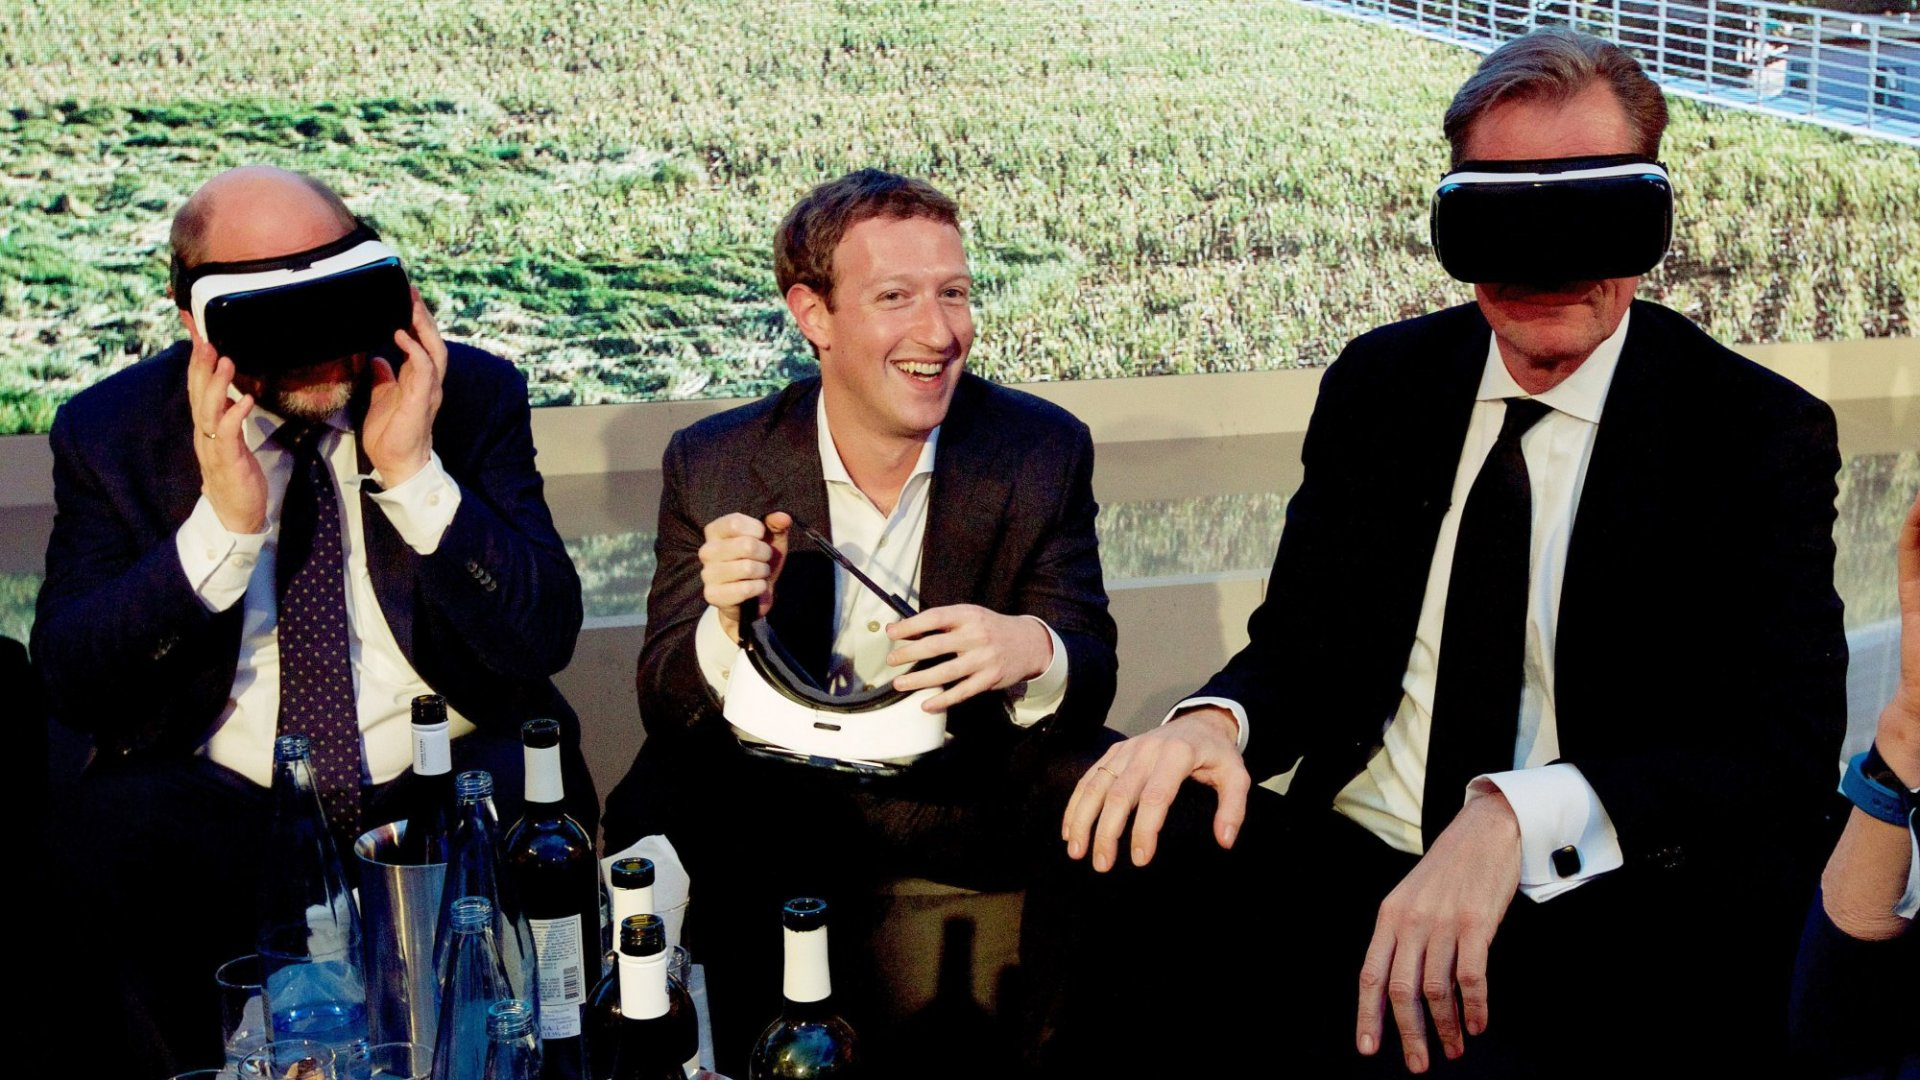 The One Thing You Should Do That Mark Zuckerberg Already Does